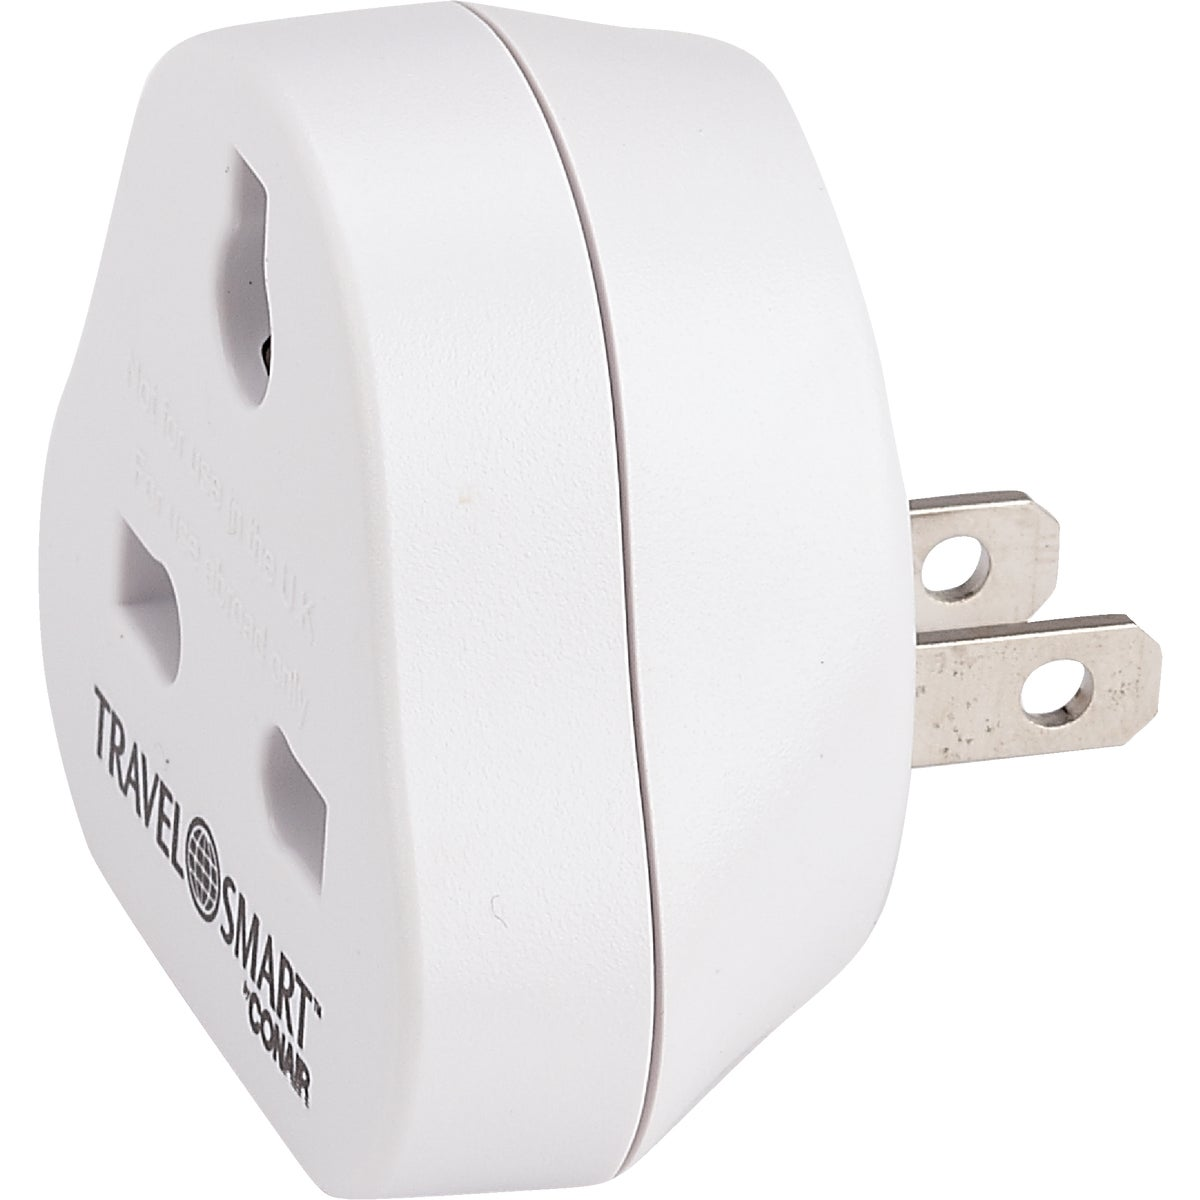 FOREIGN ADAPTER PLUG - NW-7C by Franzus Company Inc